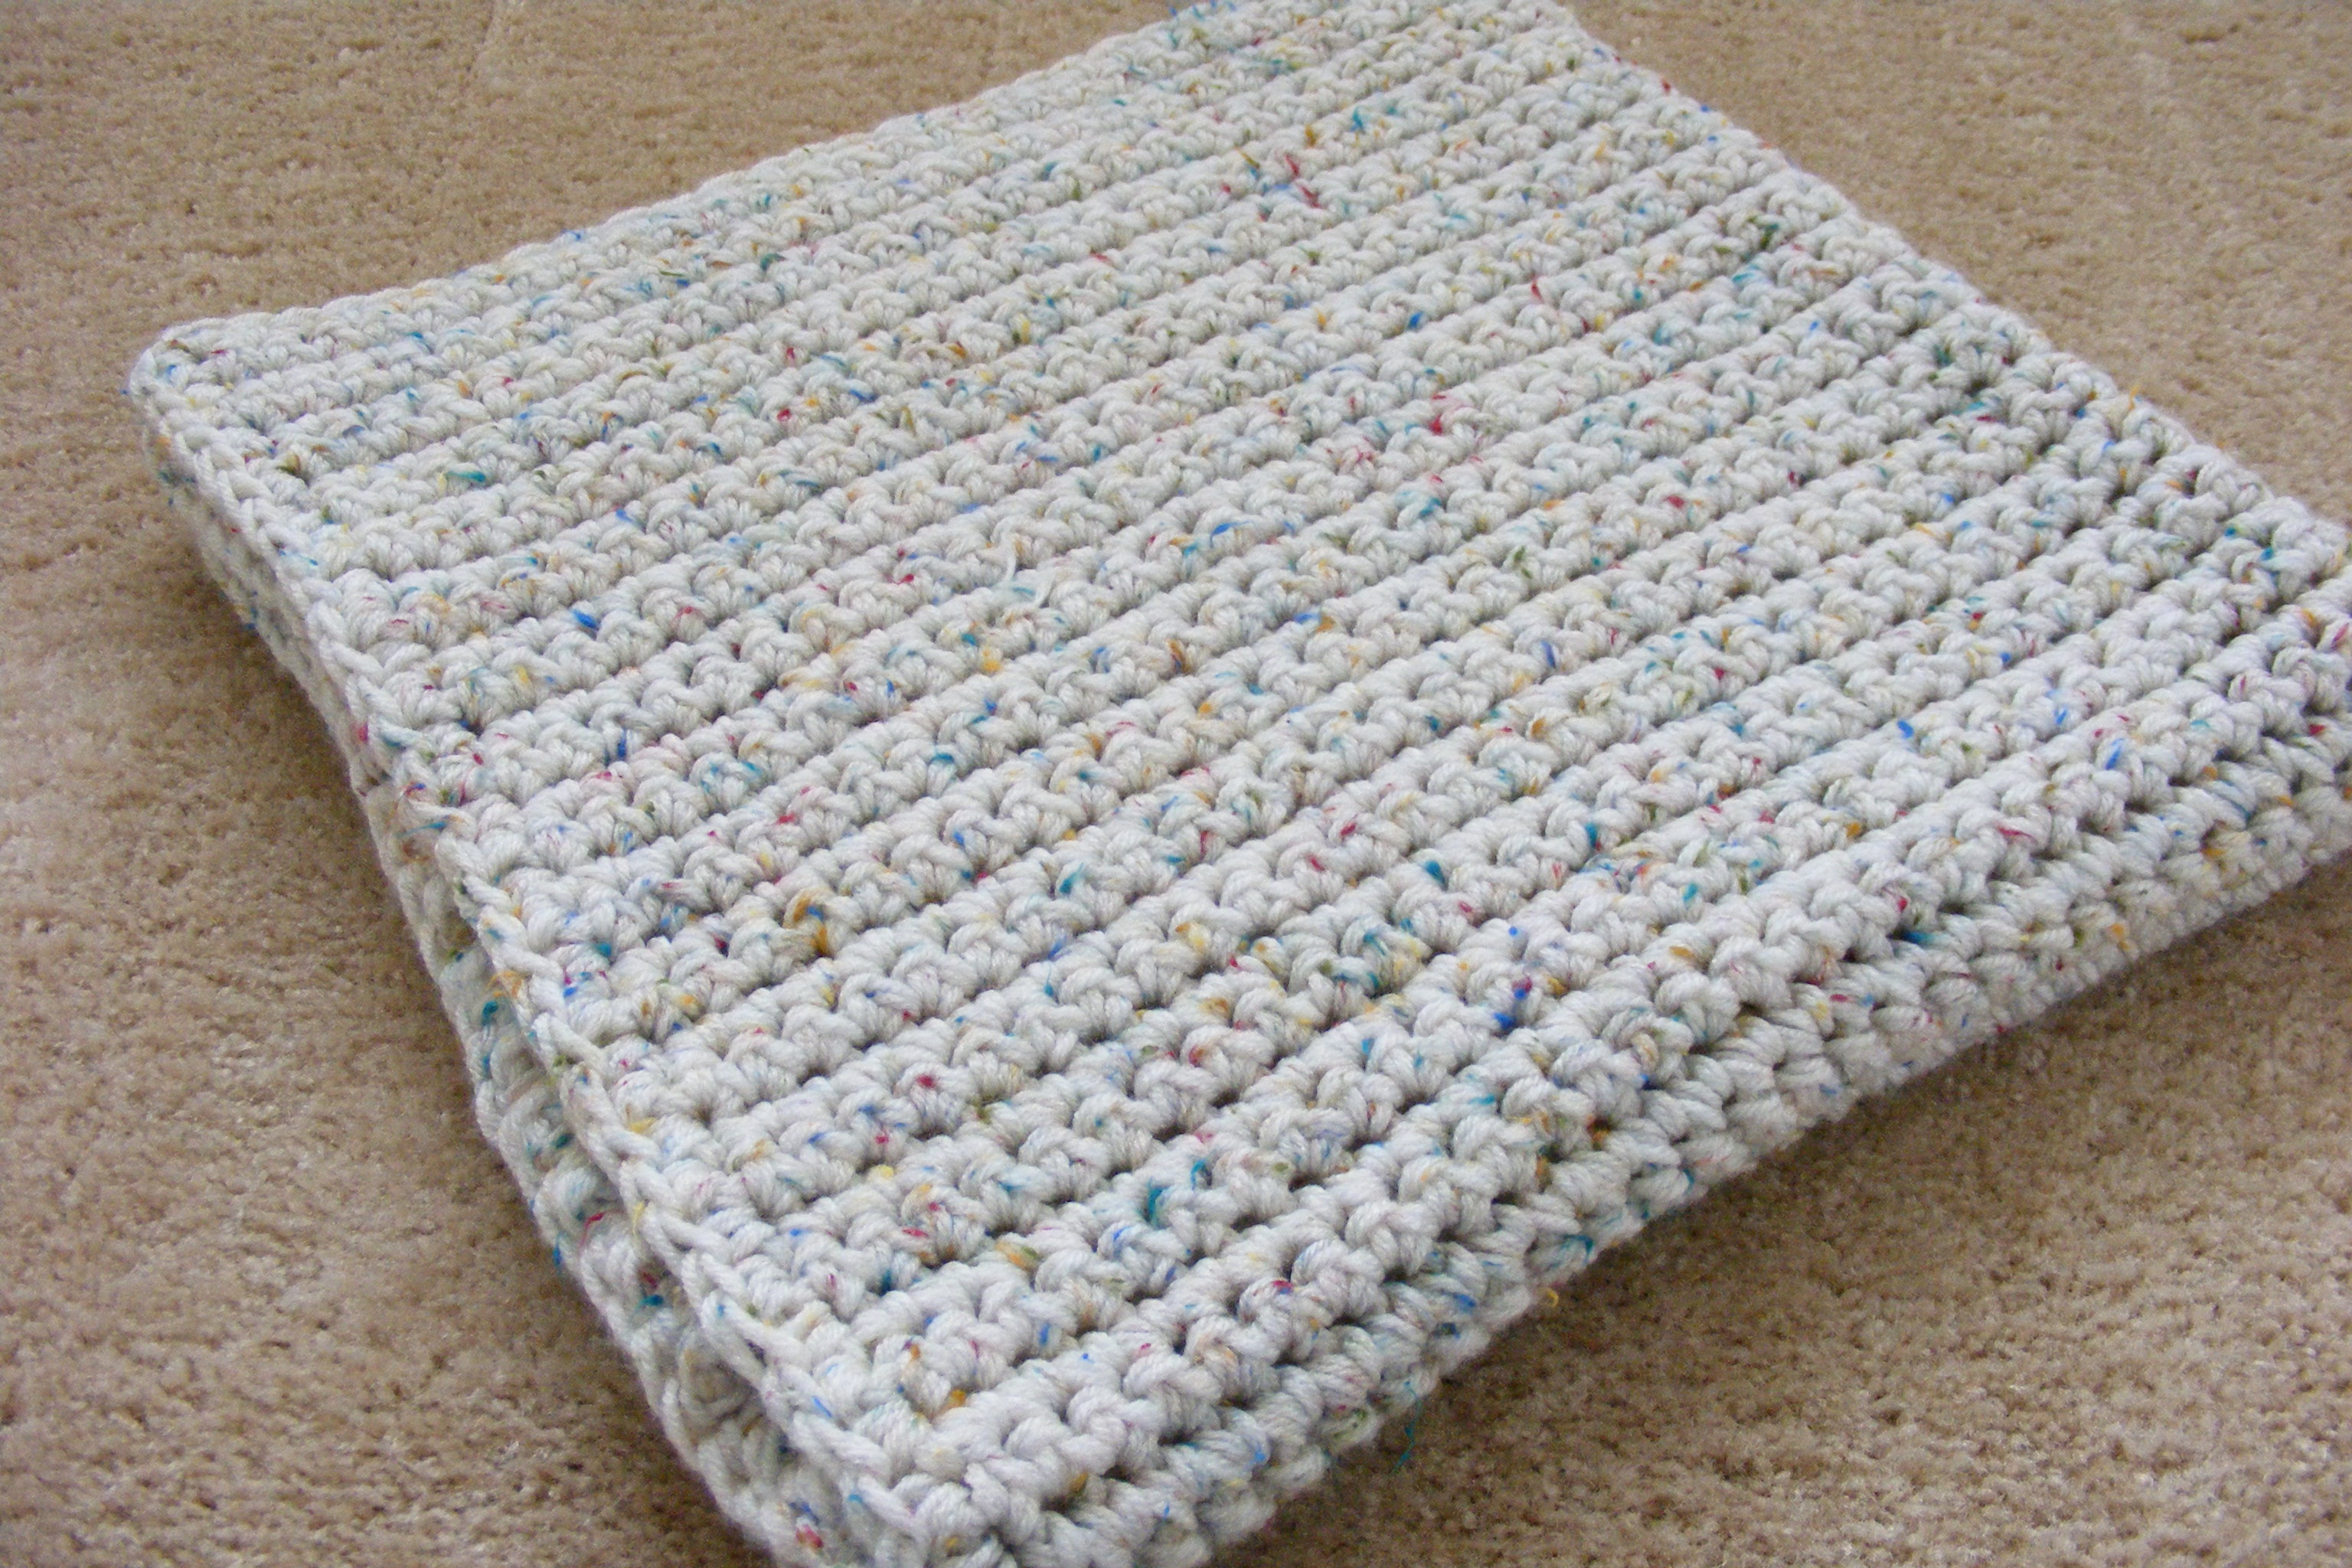 Single crochet baby blanket gretchkals yarny adventures dscf0270 simple baby blanket bankloansurffo Gallery